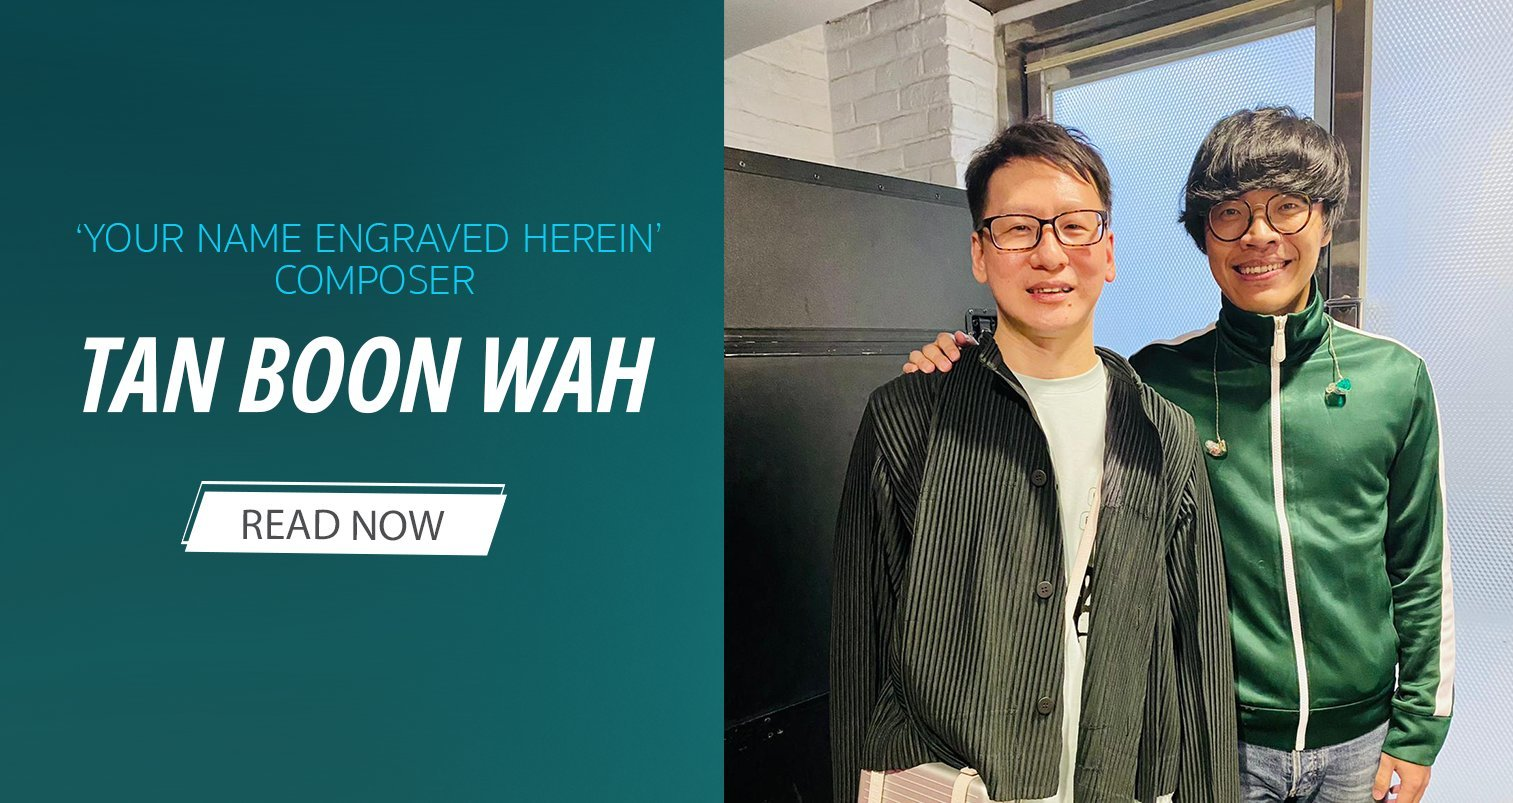 Golden Horse Winner Tan Boon Wah: From 'Your Name Engraved Herein' Songsmith to Singer